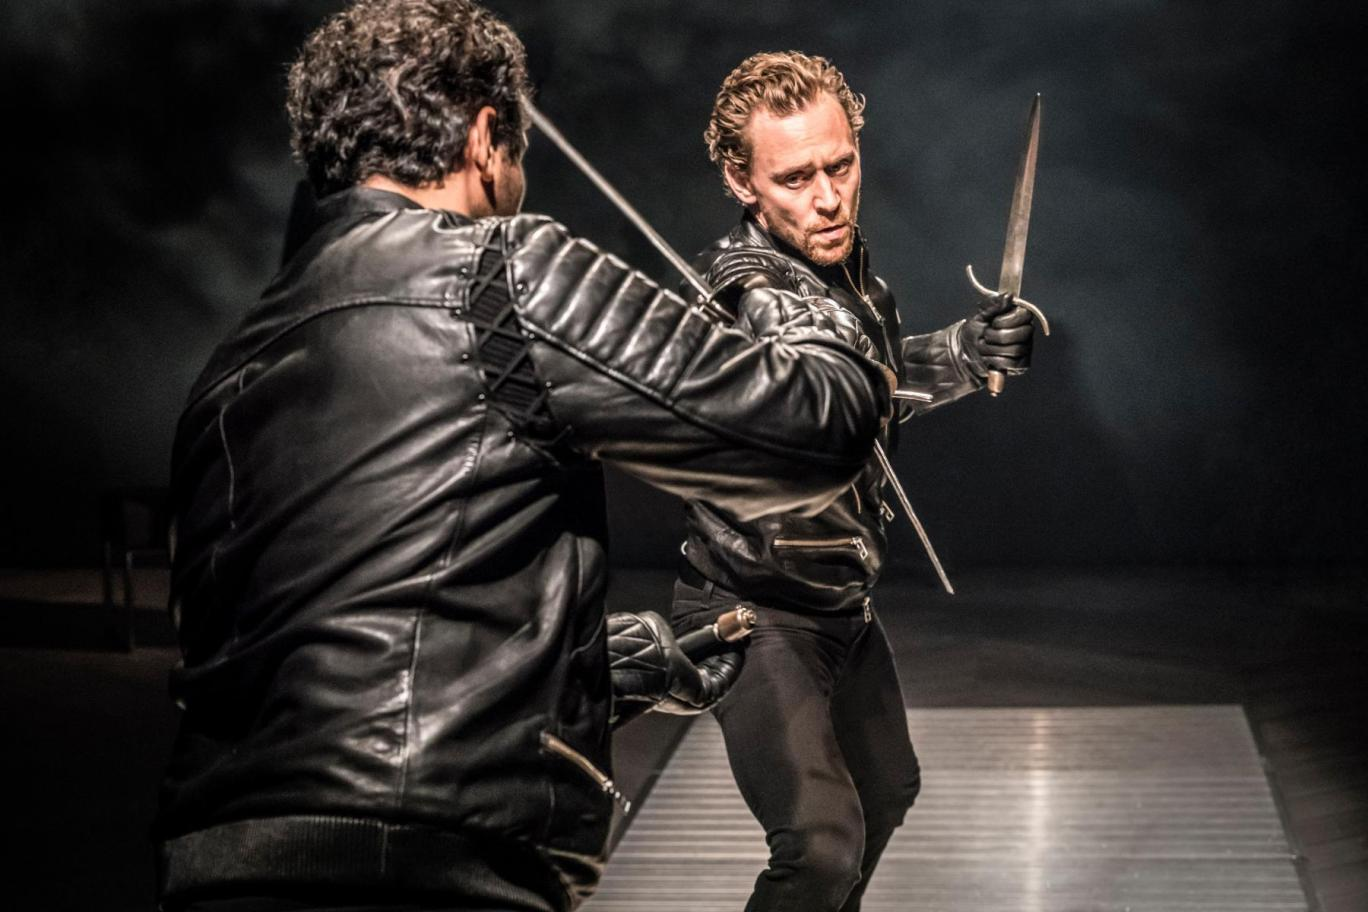 claudius in hamlet by shakespeare Scene iii a room in the castle / enter king claudius, rosencrantz, and guildenstern / king claudius / i like him not, nor stands it safe with us / to let his madness range.